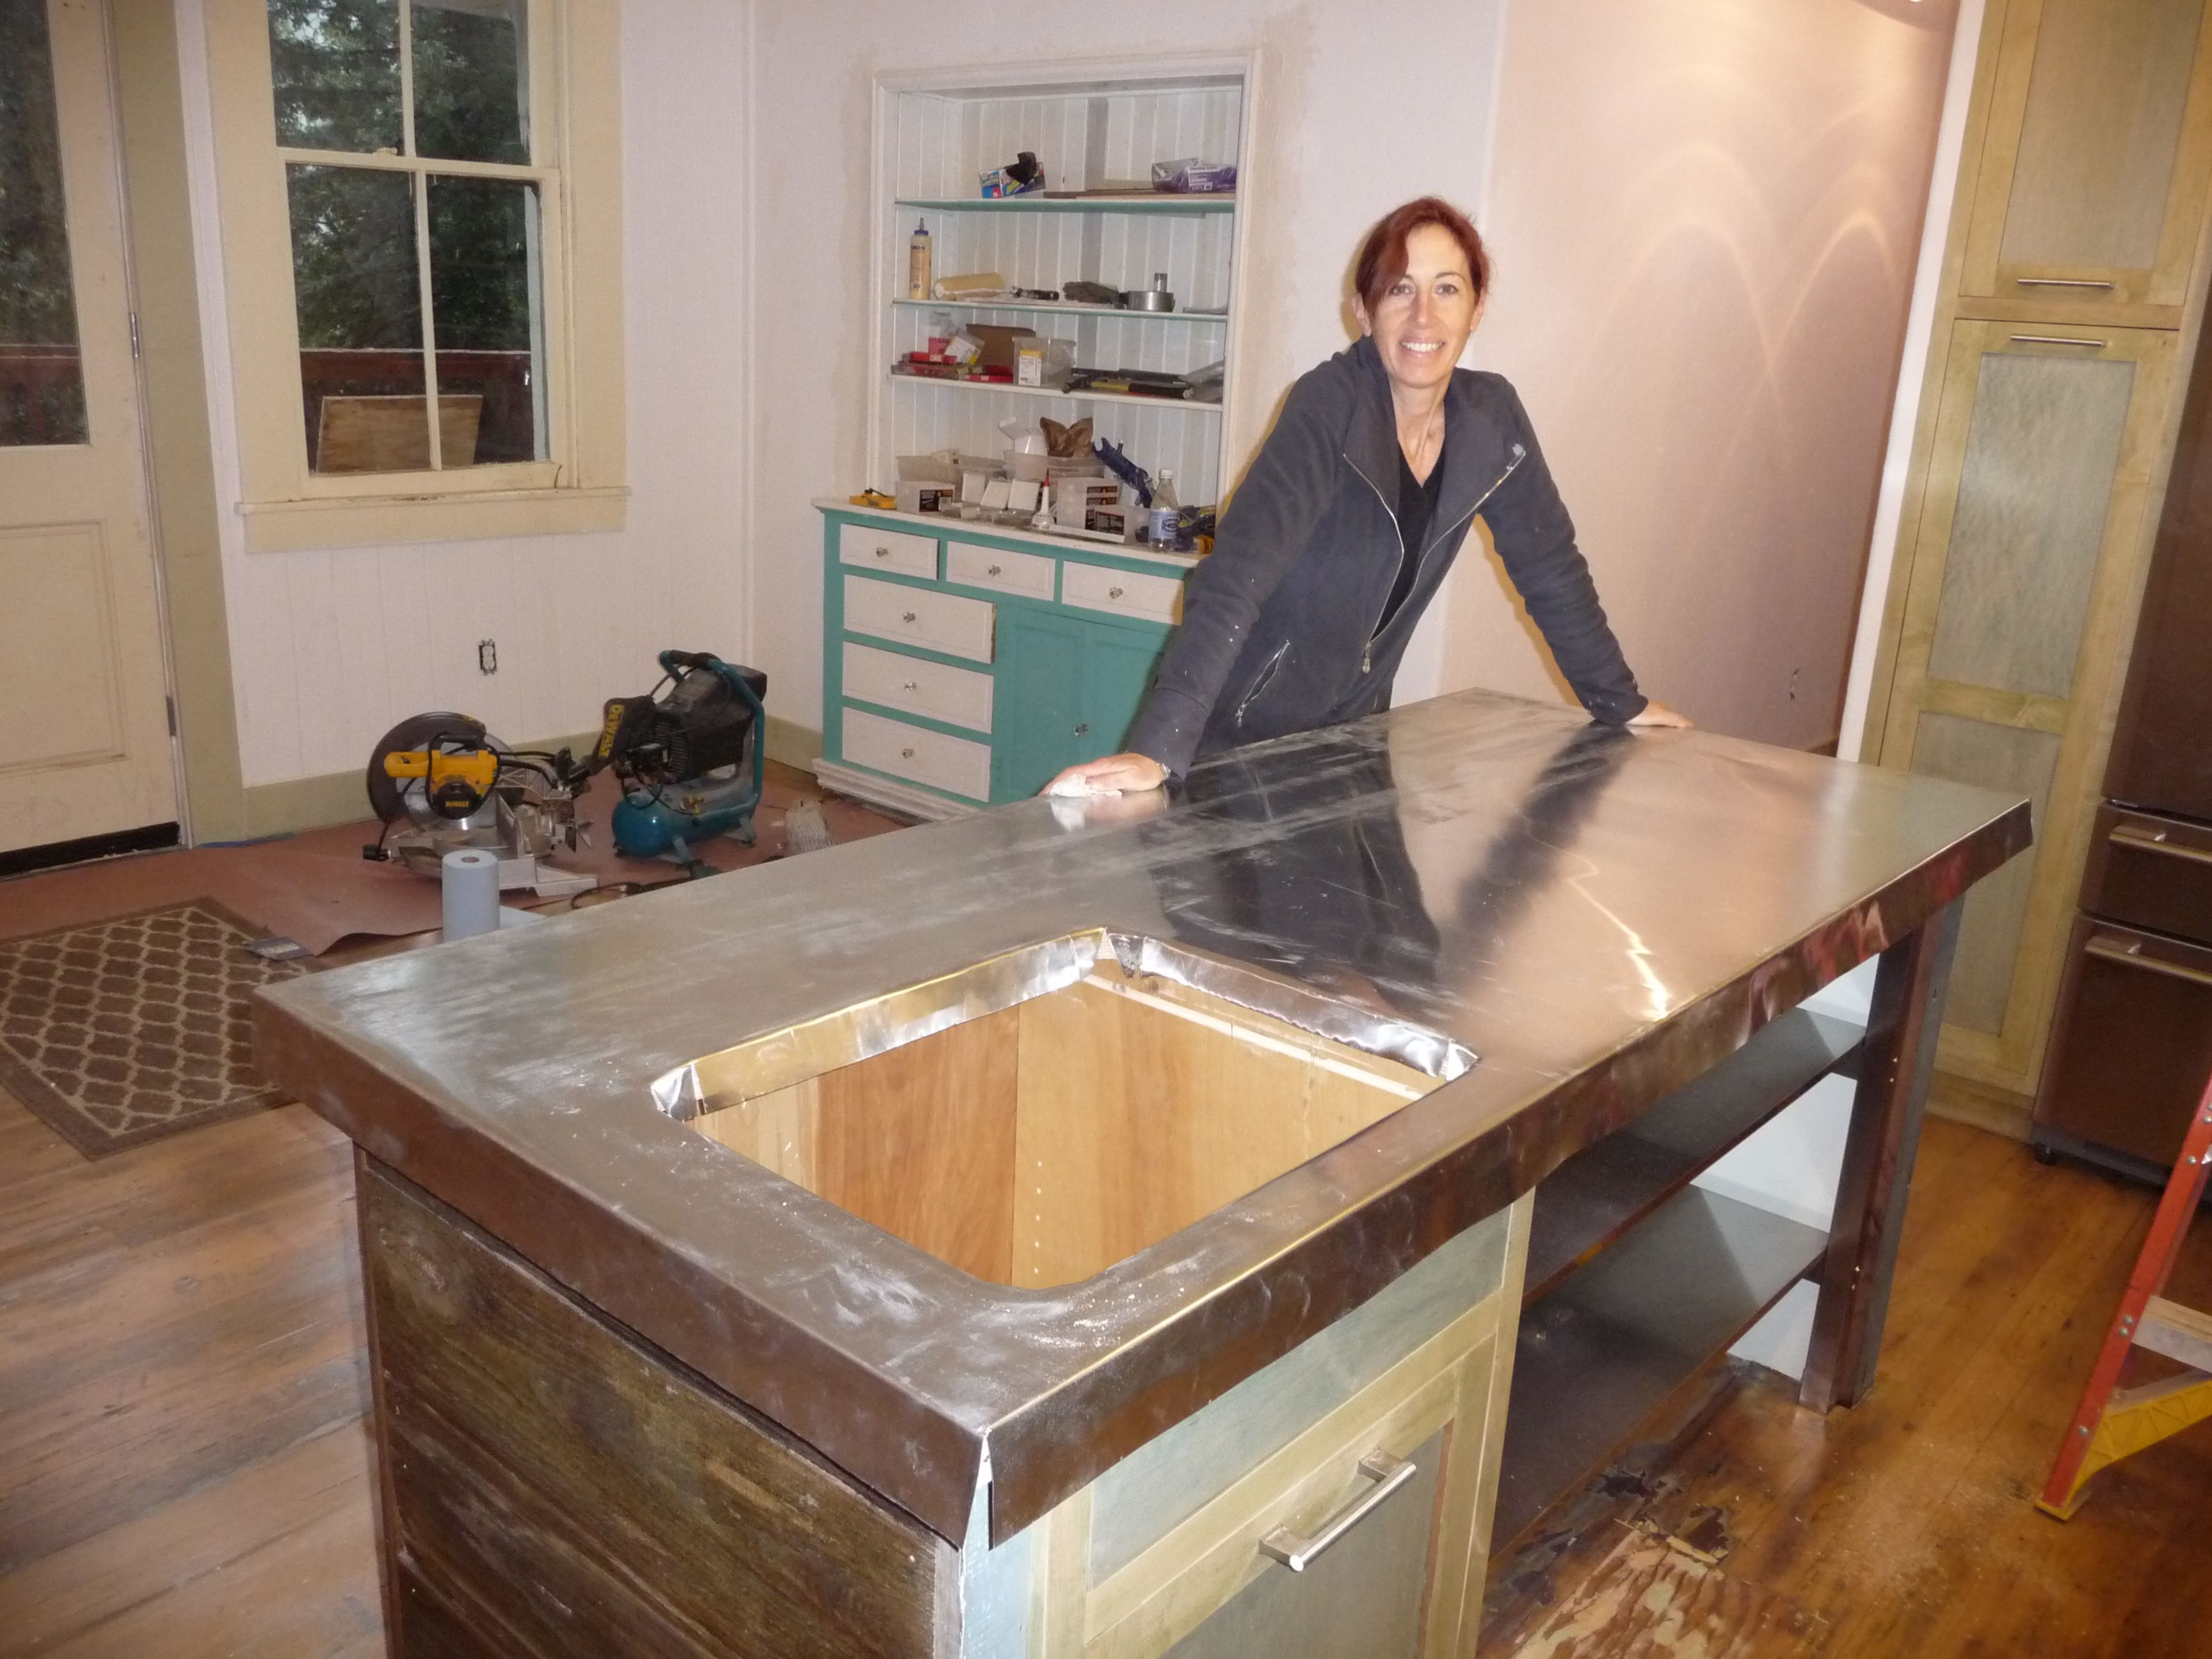 How To Make A Zinc Island Counter